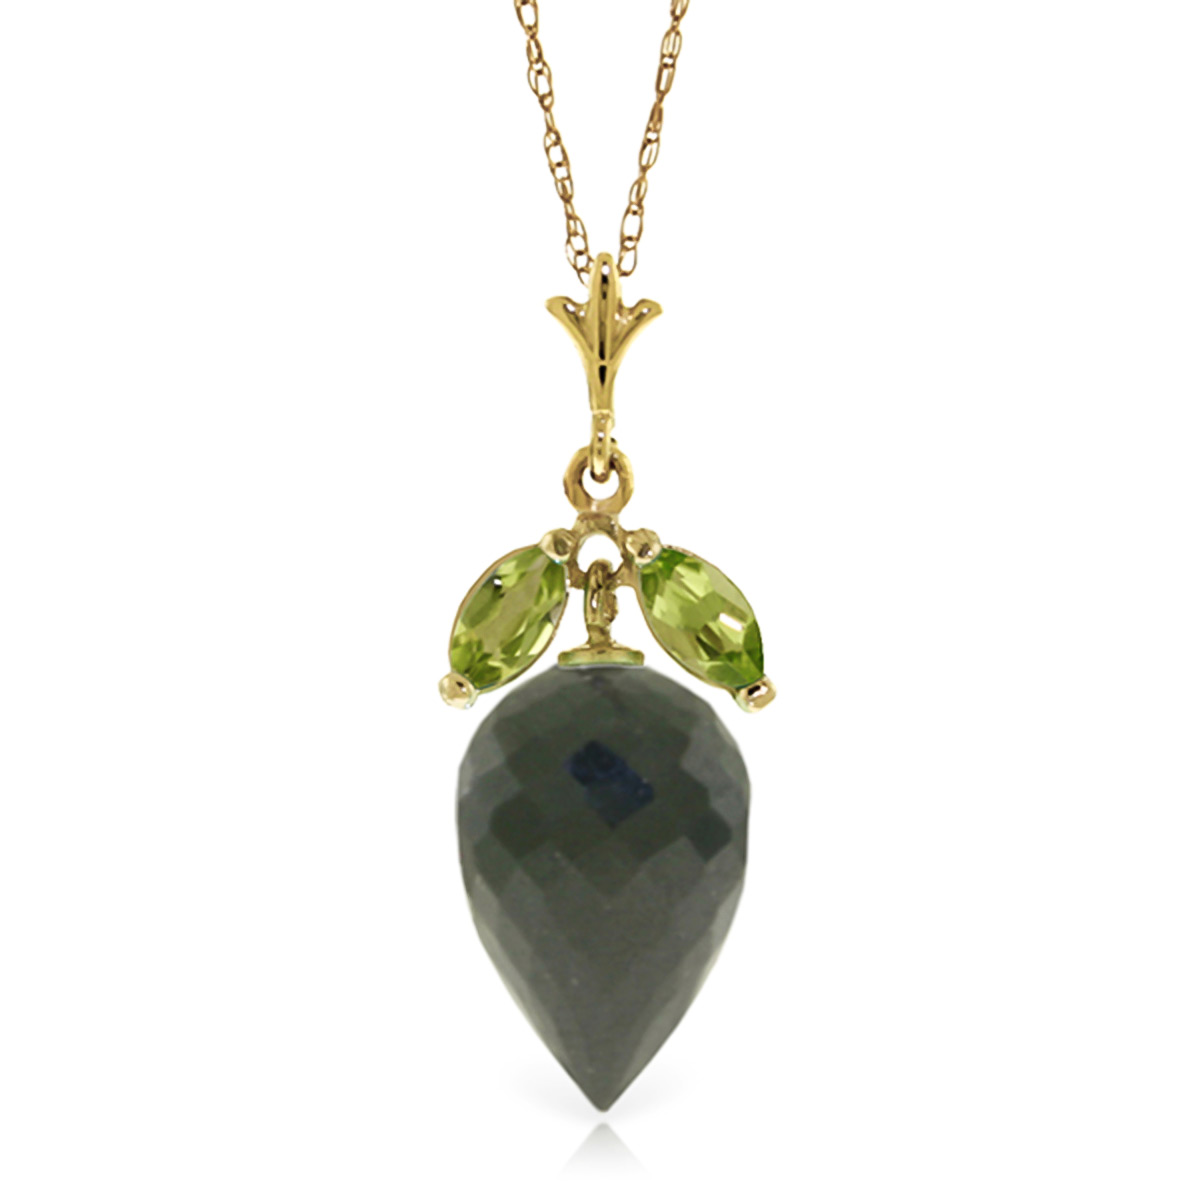 Bargain Black Spinel and Peridot Pendant Necklace 12.75ctw in 9ct Gold Stockists